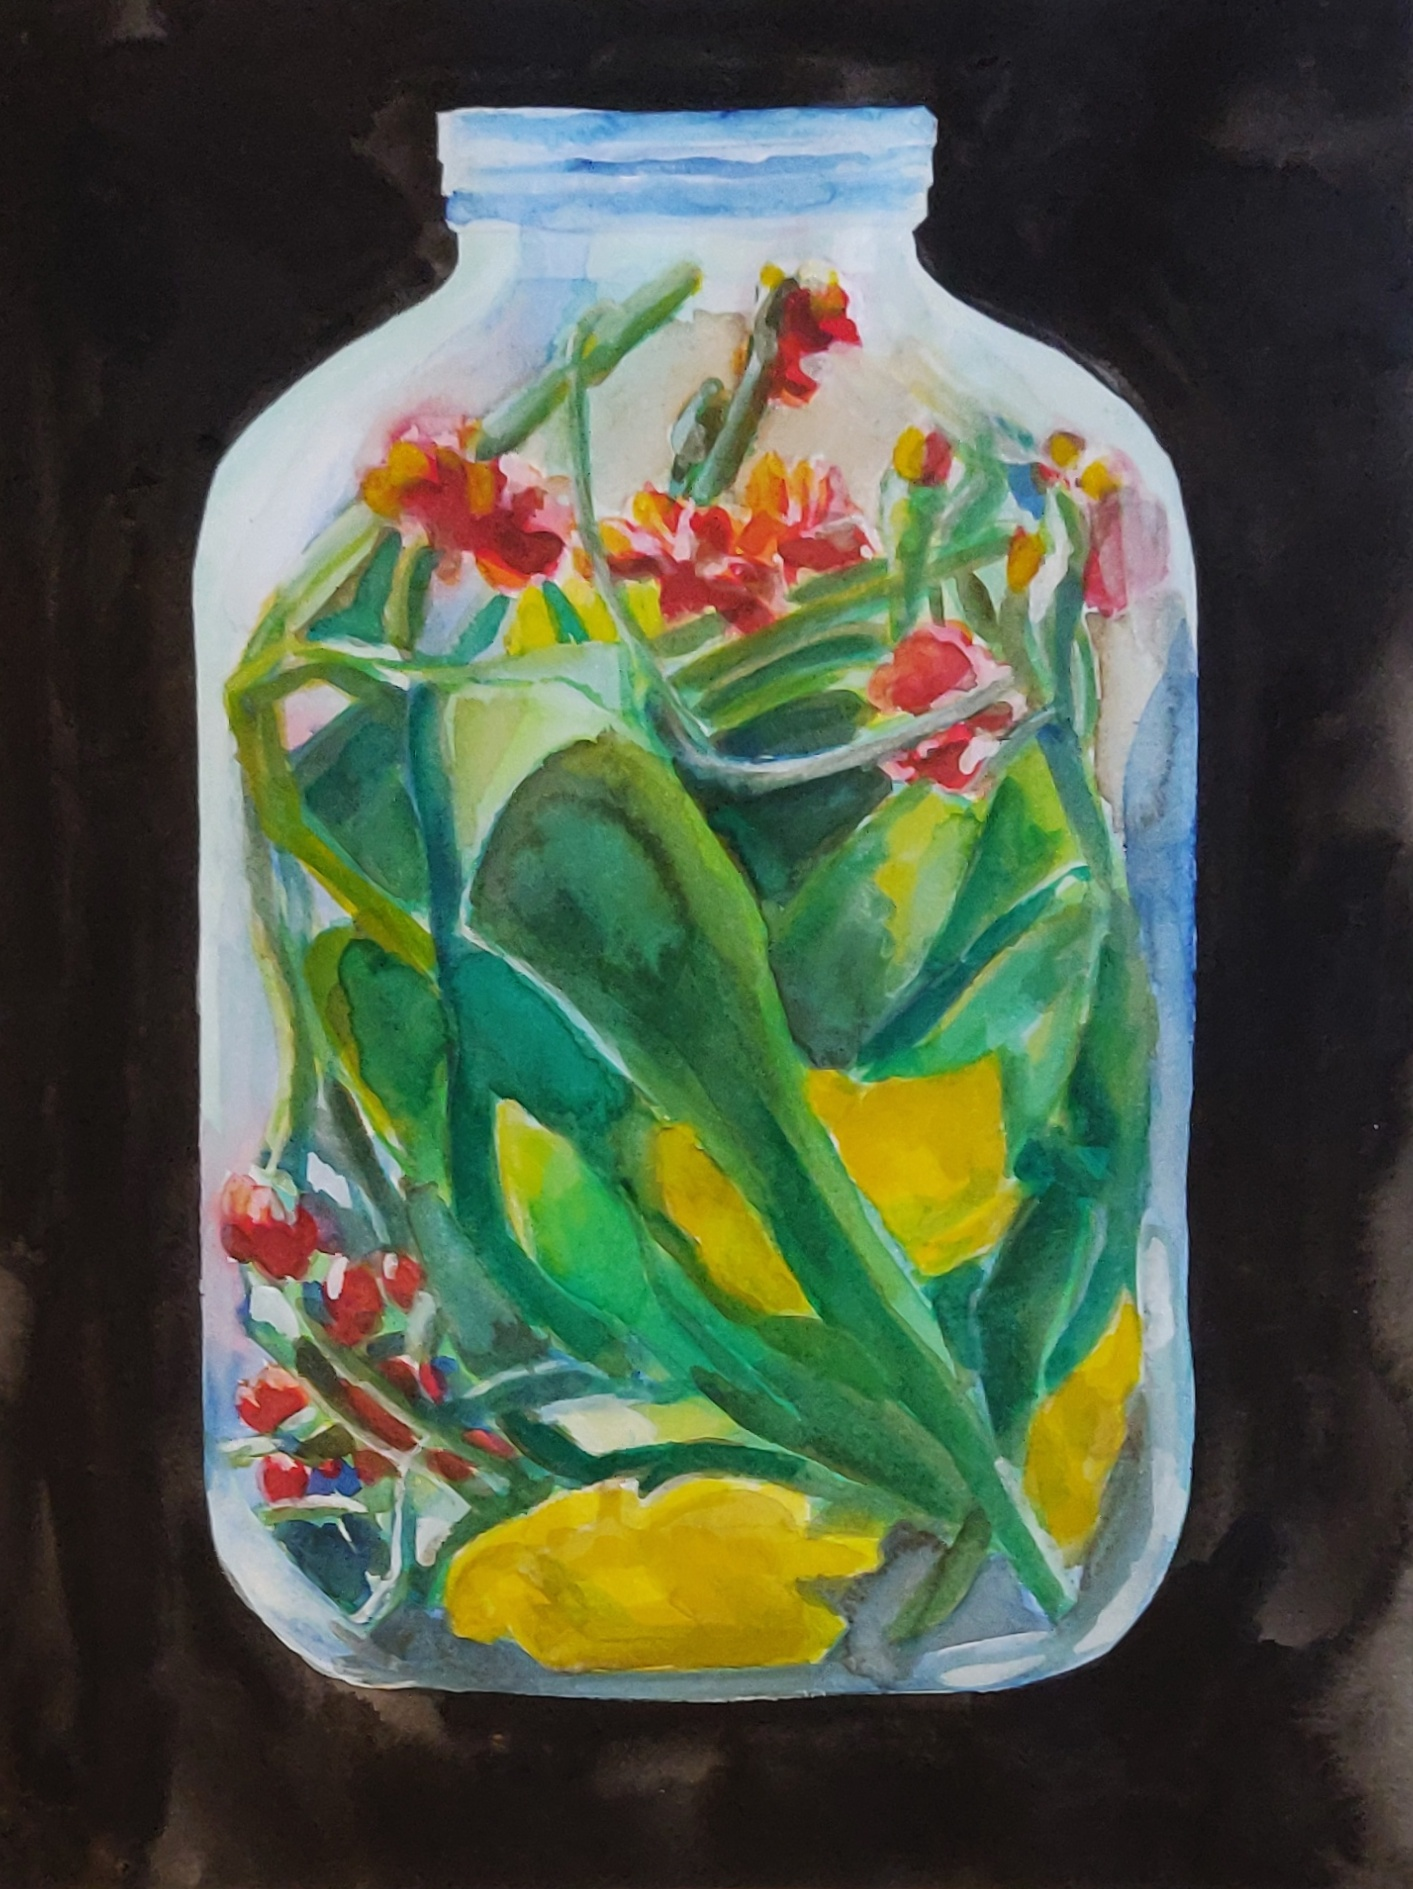 Flowers in a glass jar